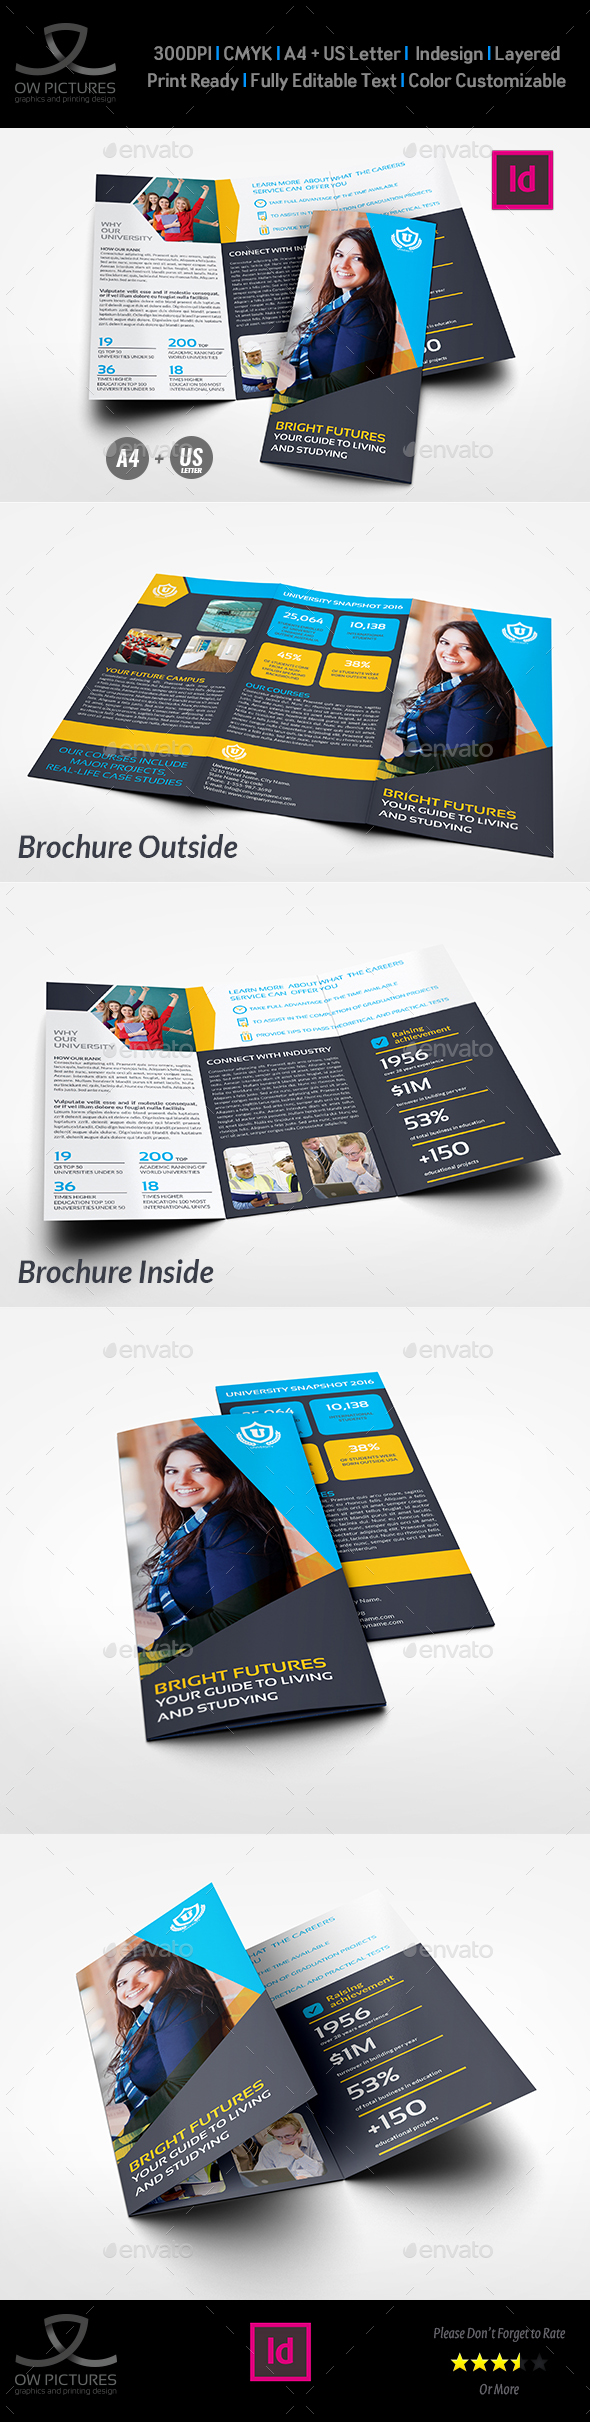 University - College Tri- Fold Brochure Template - Brochures Print Templates